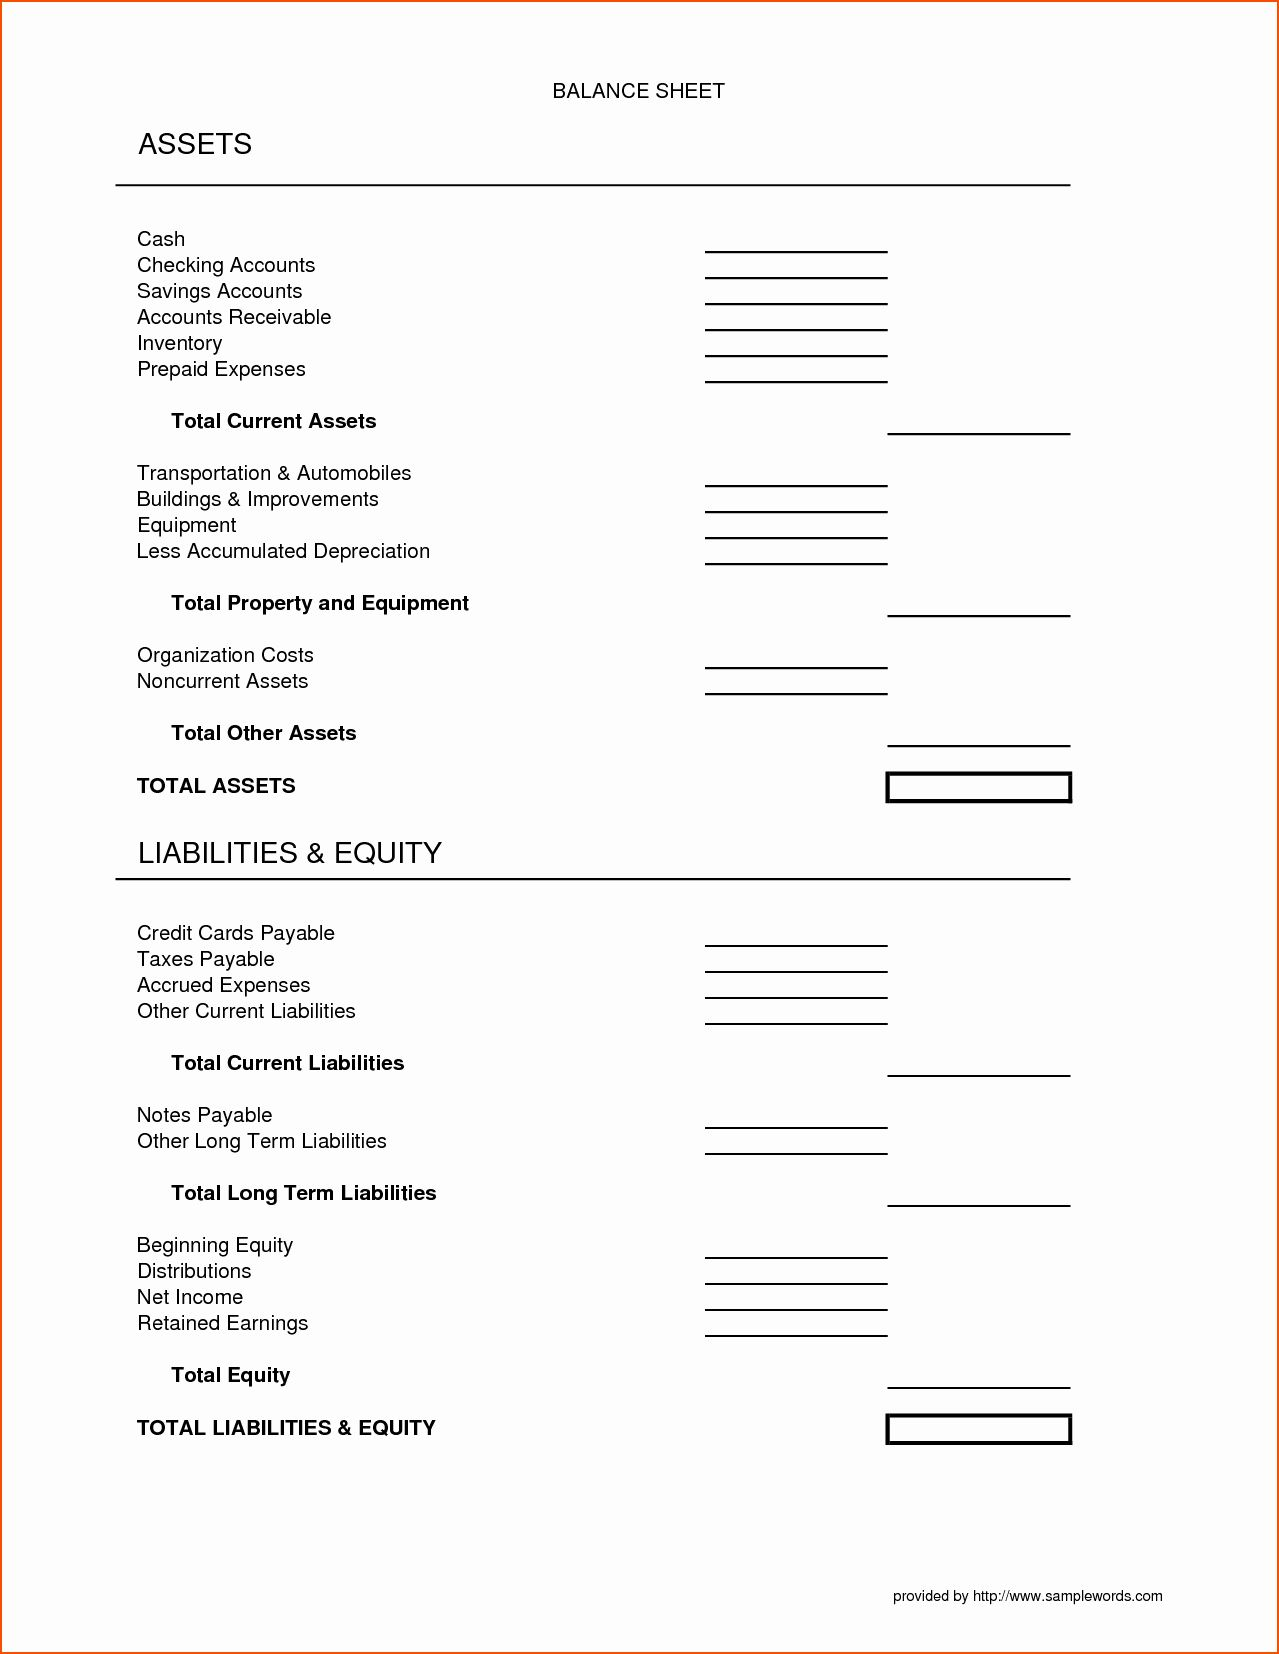 pin by jacque line on finance investing balance sheet template small business accounting financial statement profit and loss